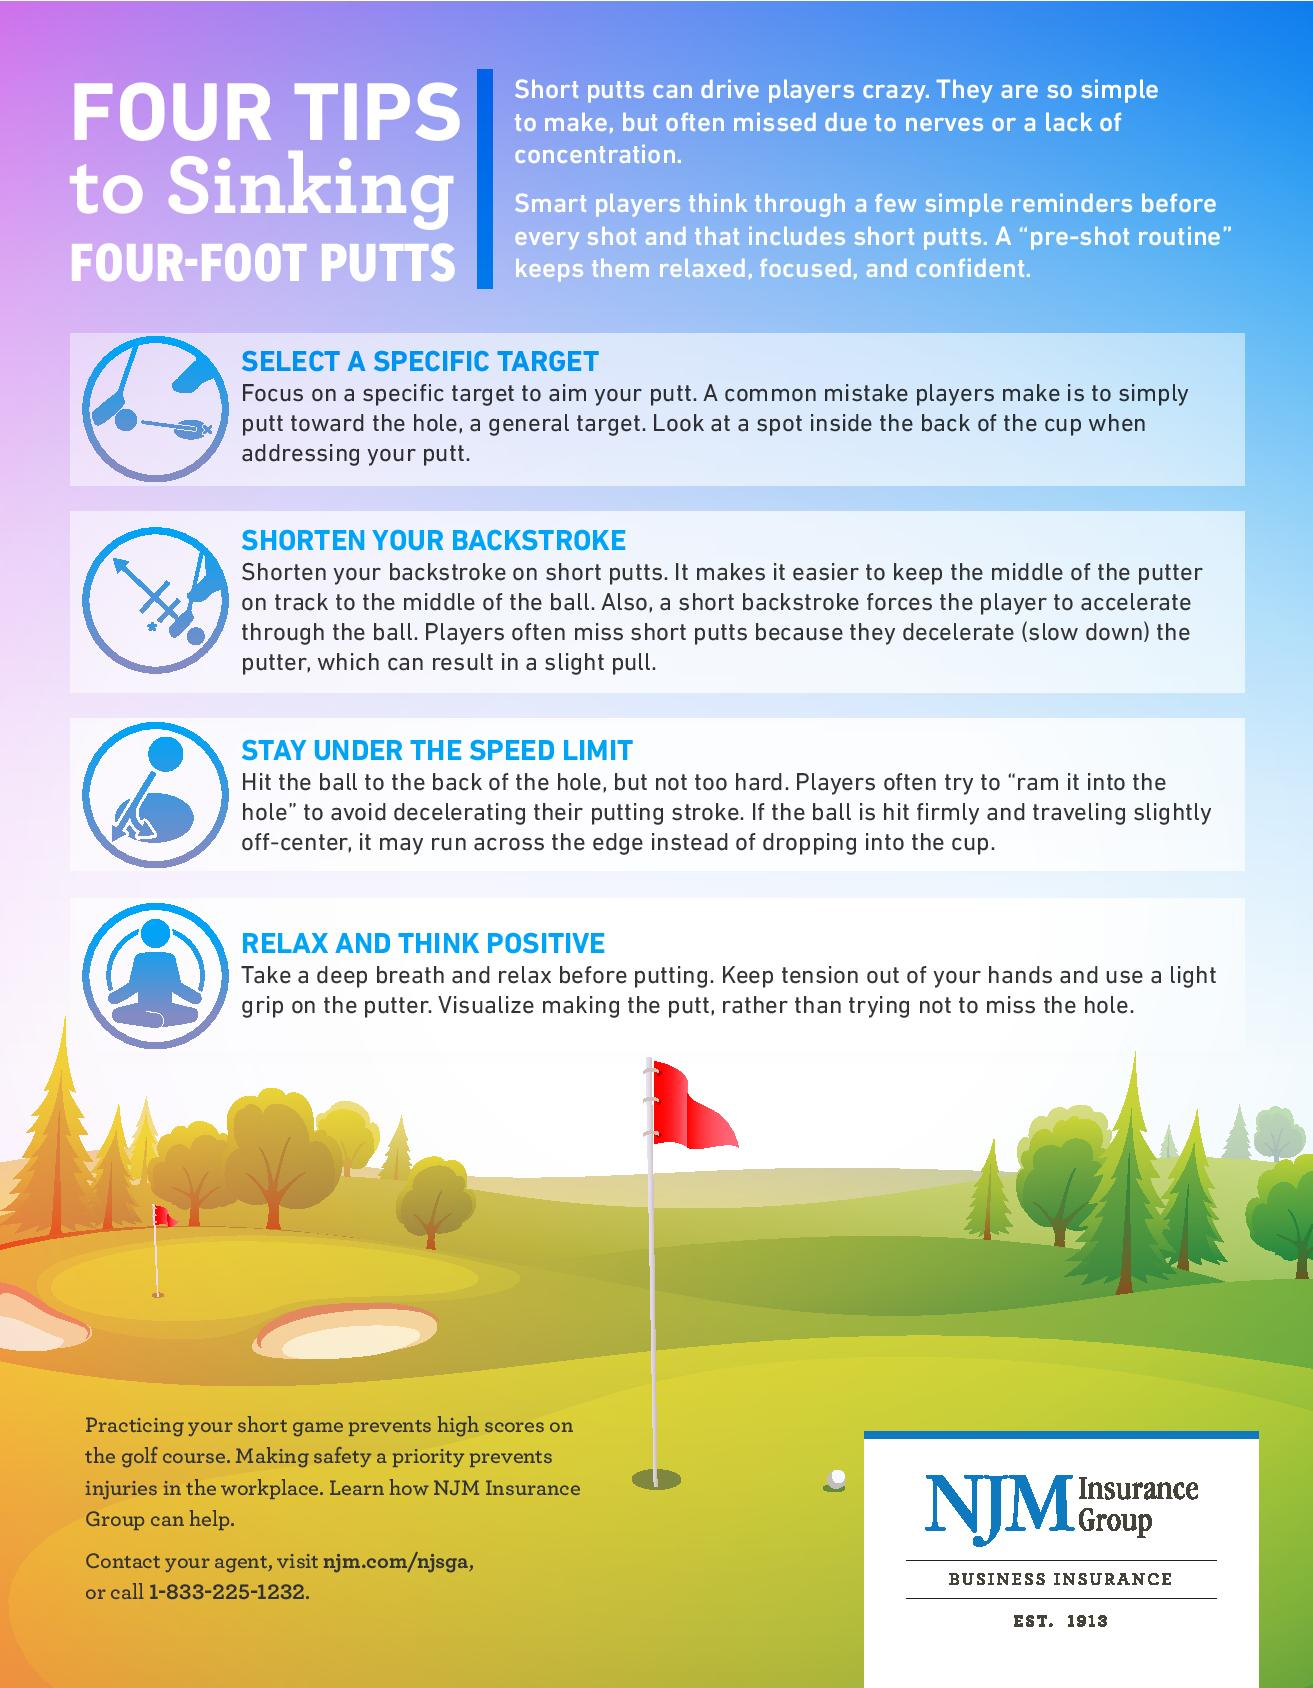 Four Tips to Sinking Four-Foot Putts